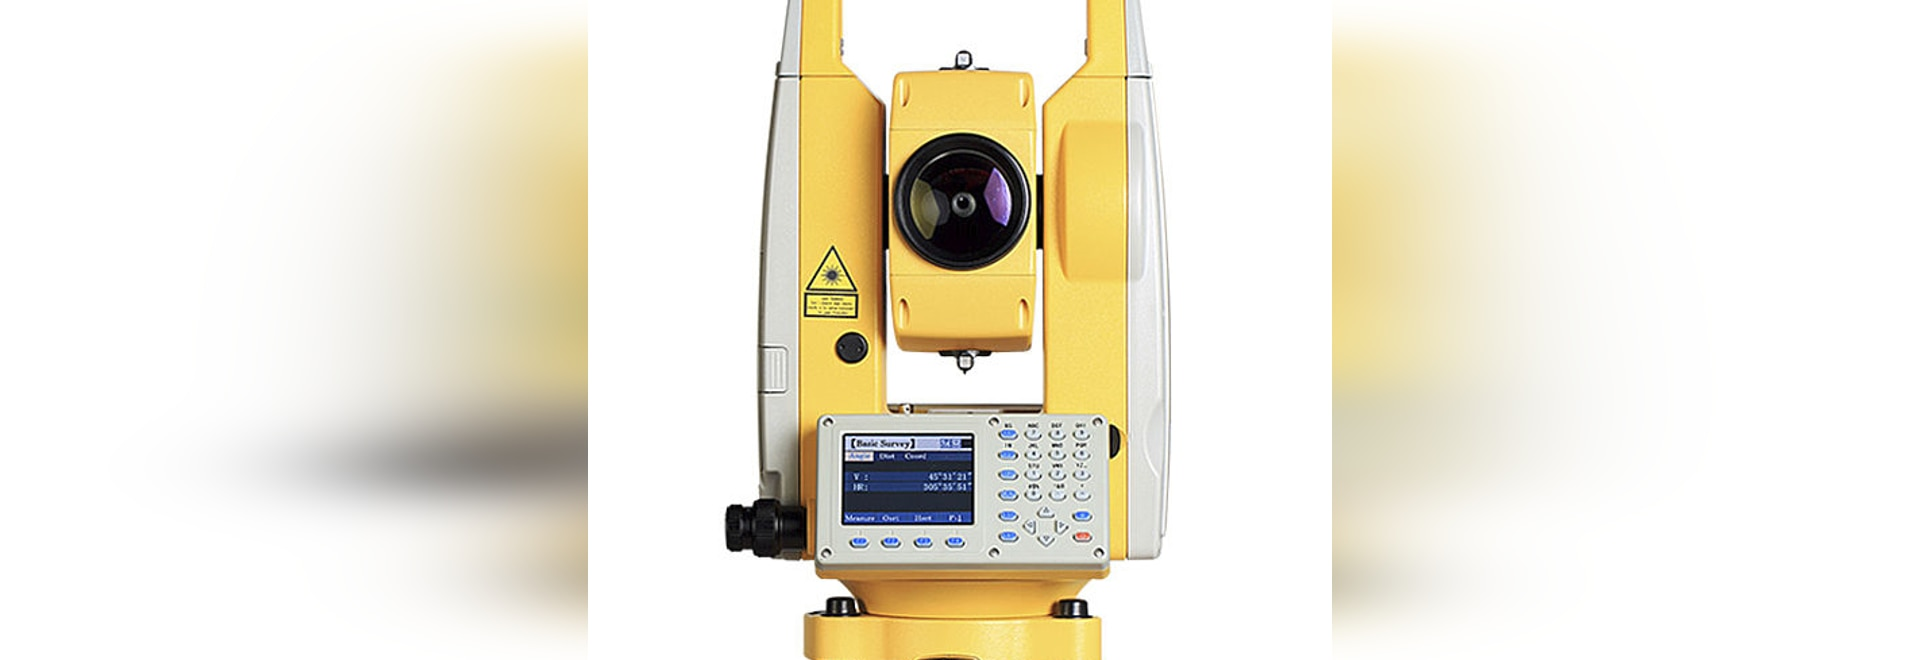 SOUTH/Total station/reflectorless/automatic/waterproof/NTS-382R10